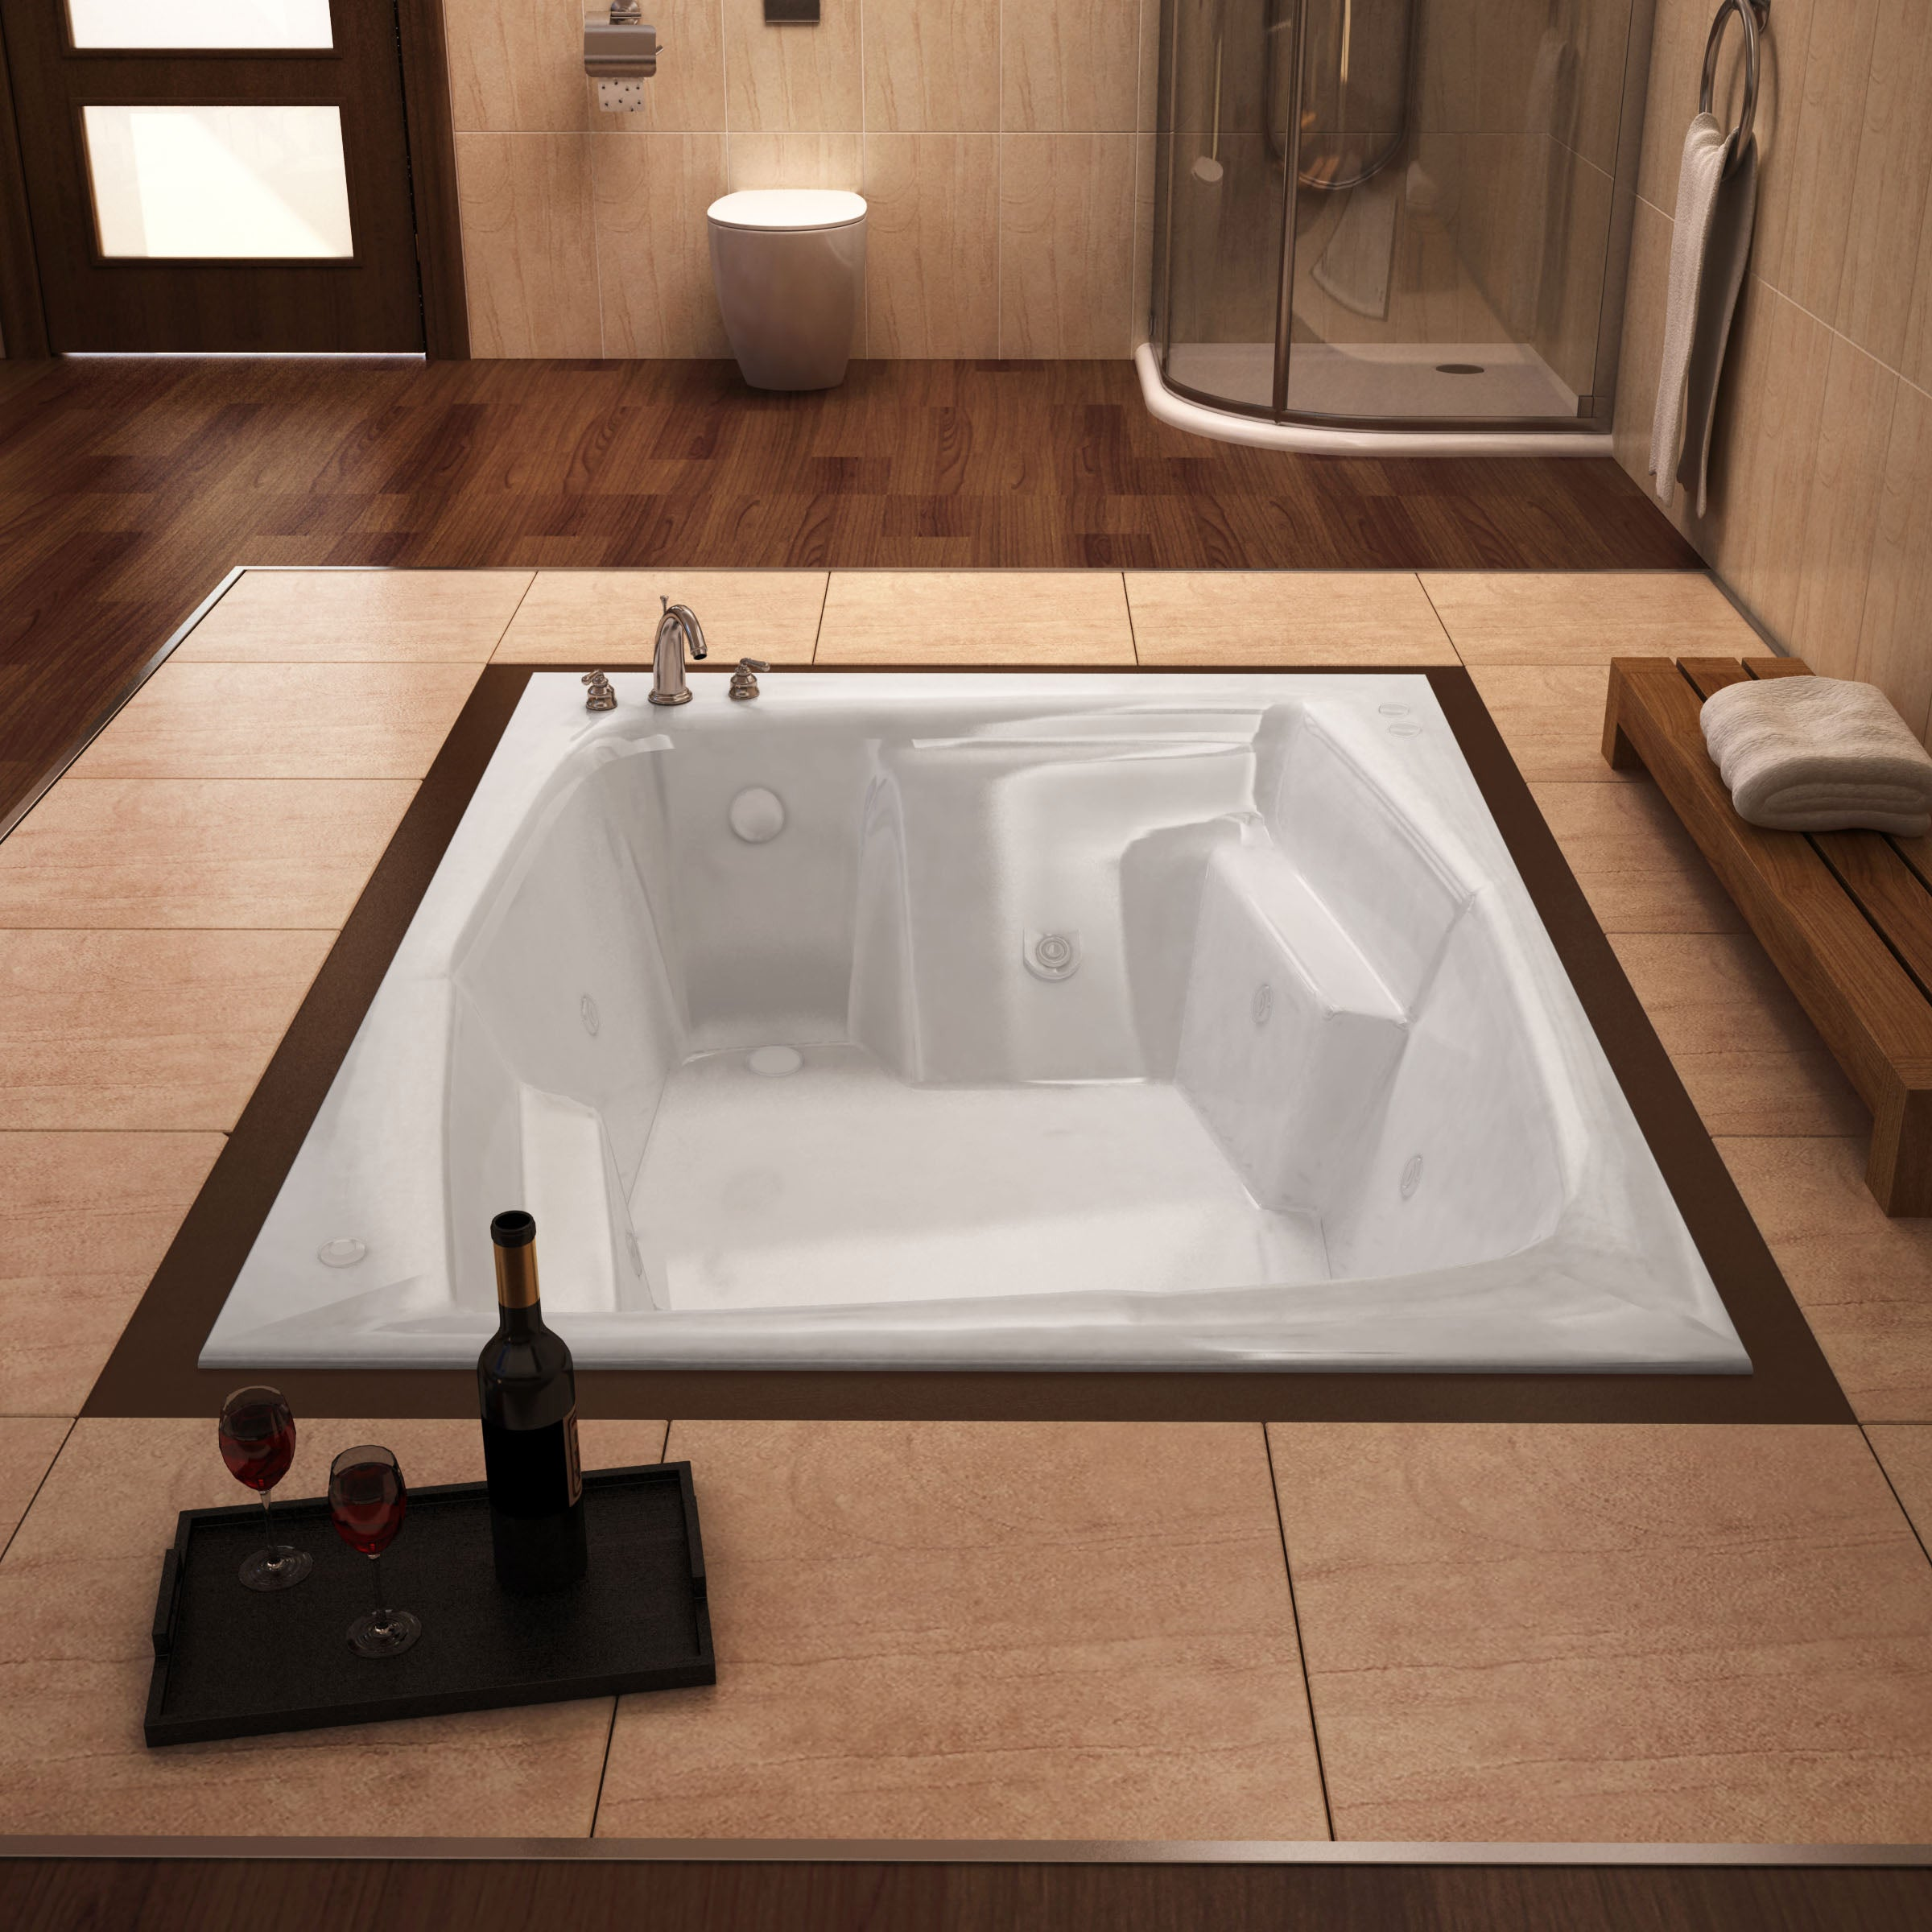 Shop Mountain Home Bards 54x72-inch Acrylic Whirlpool Jetted Drop-in ...